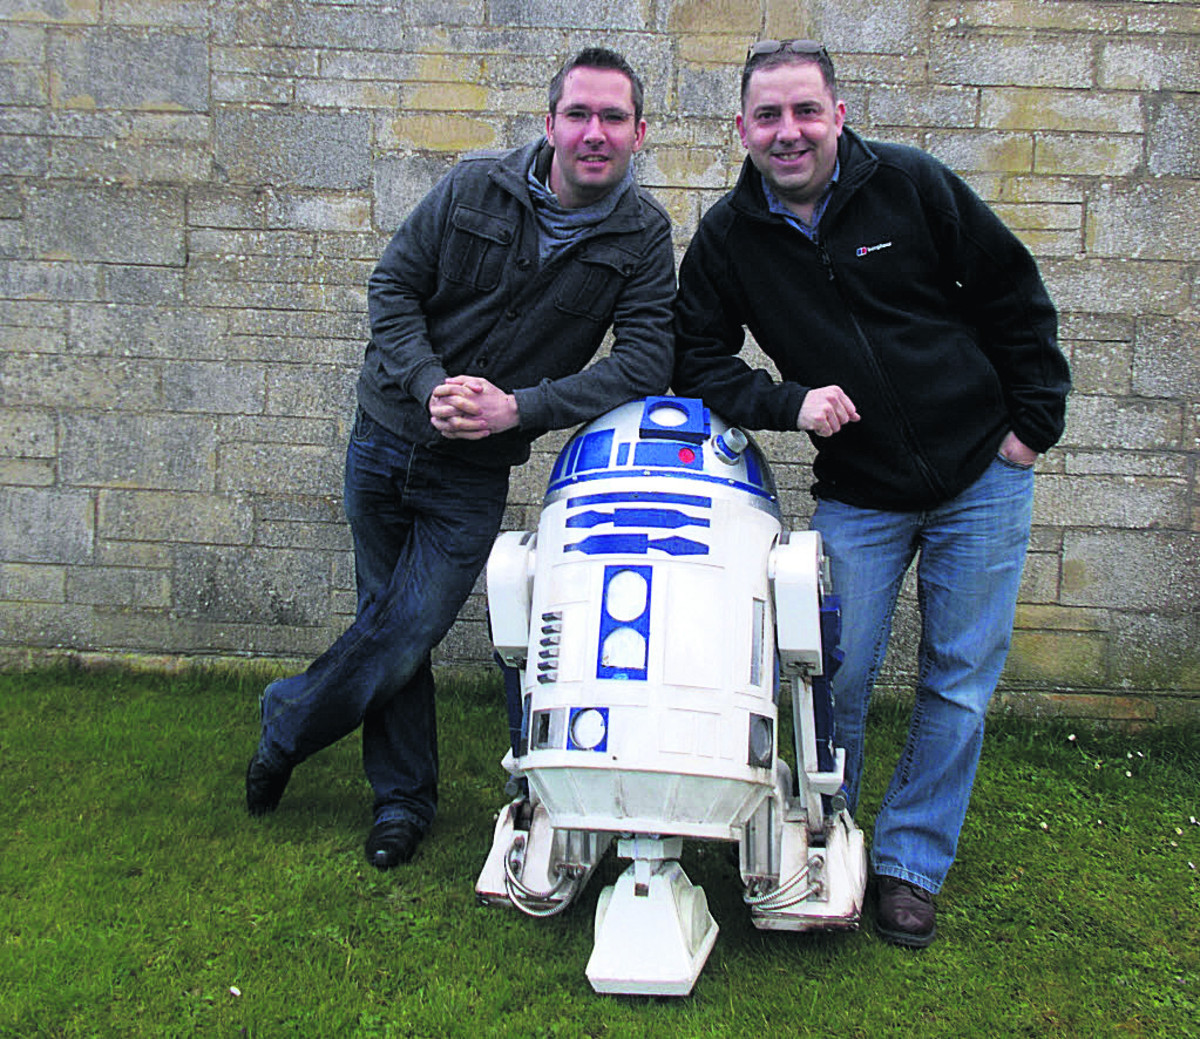 Anthony Milner, left, and Martin Coates, right, who are settting up Chippenham's first sci-fi event